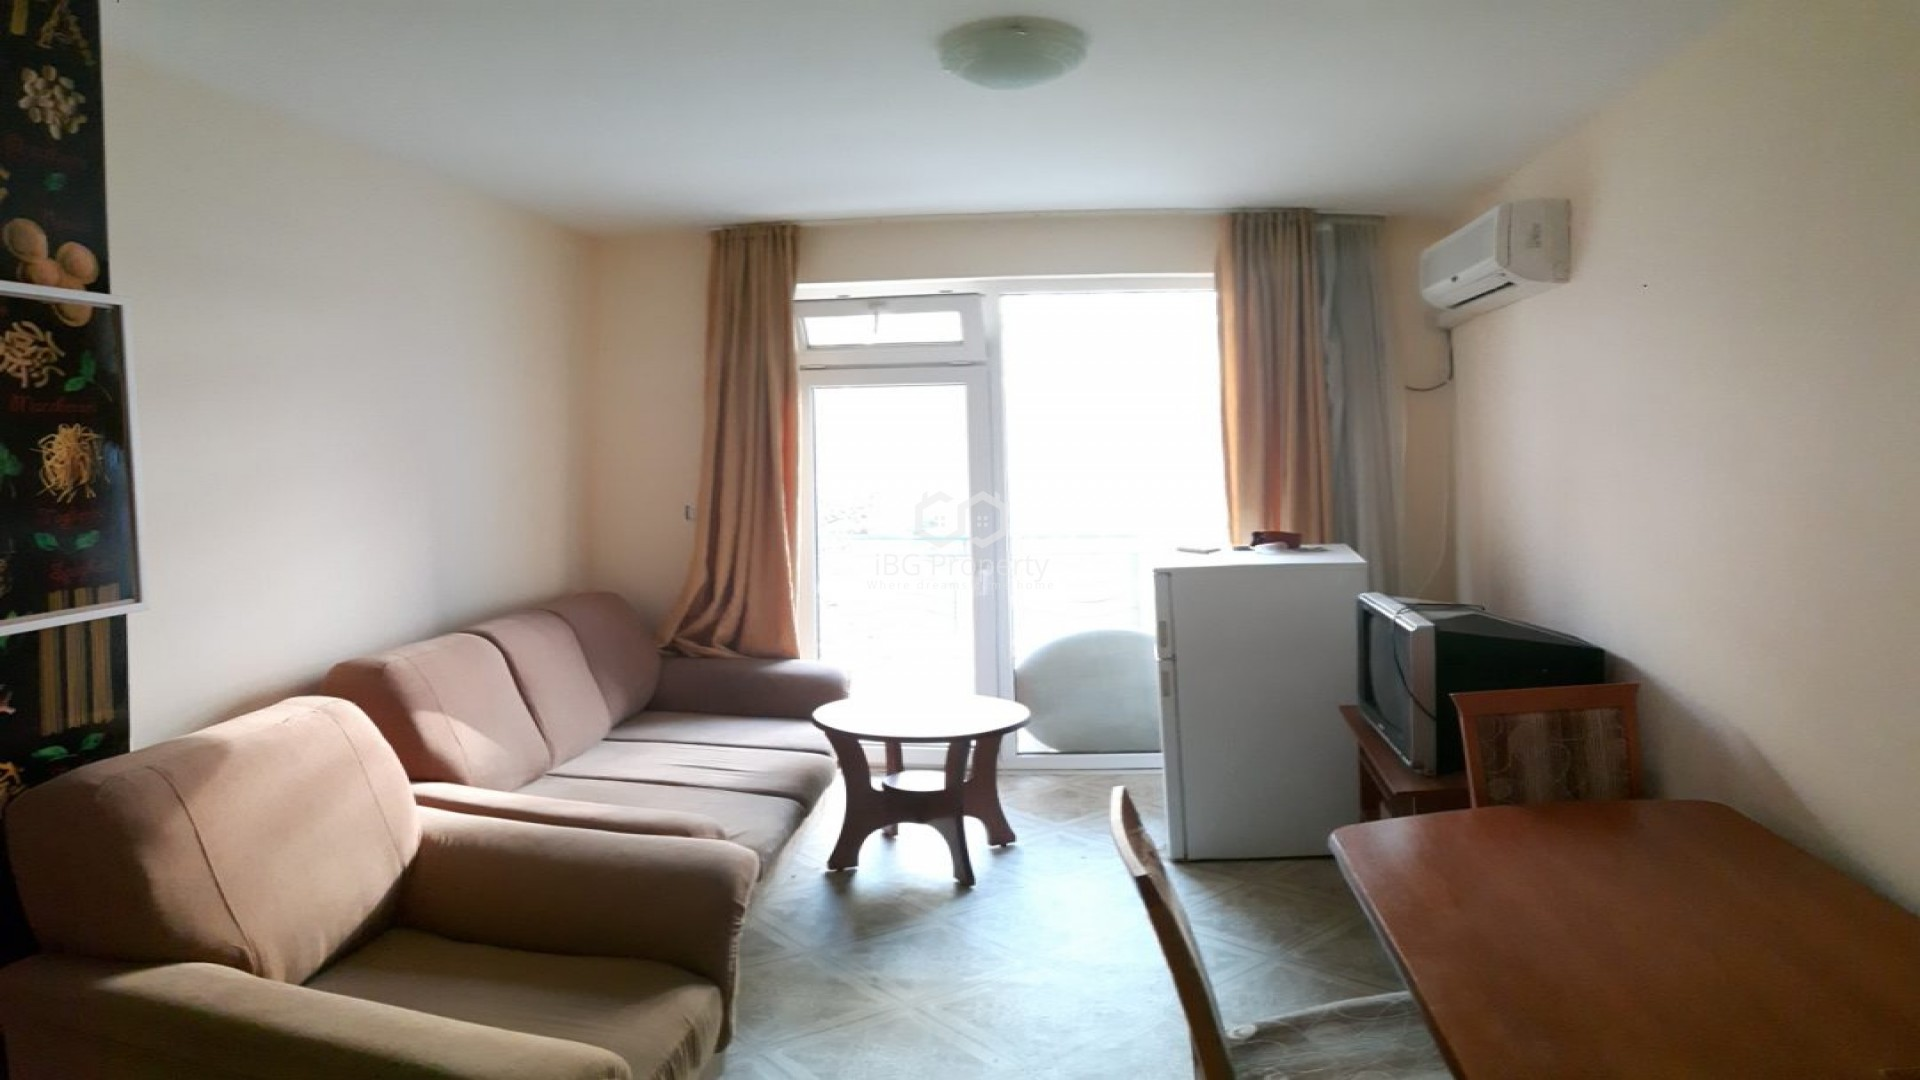 One bedroom apartment Sunny Beach 44 m2